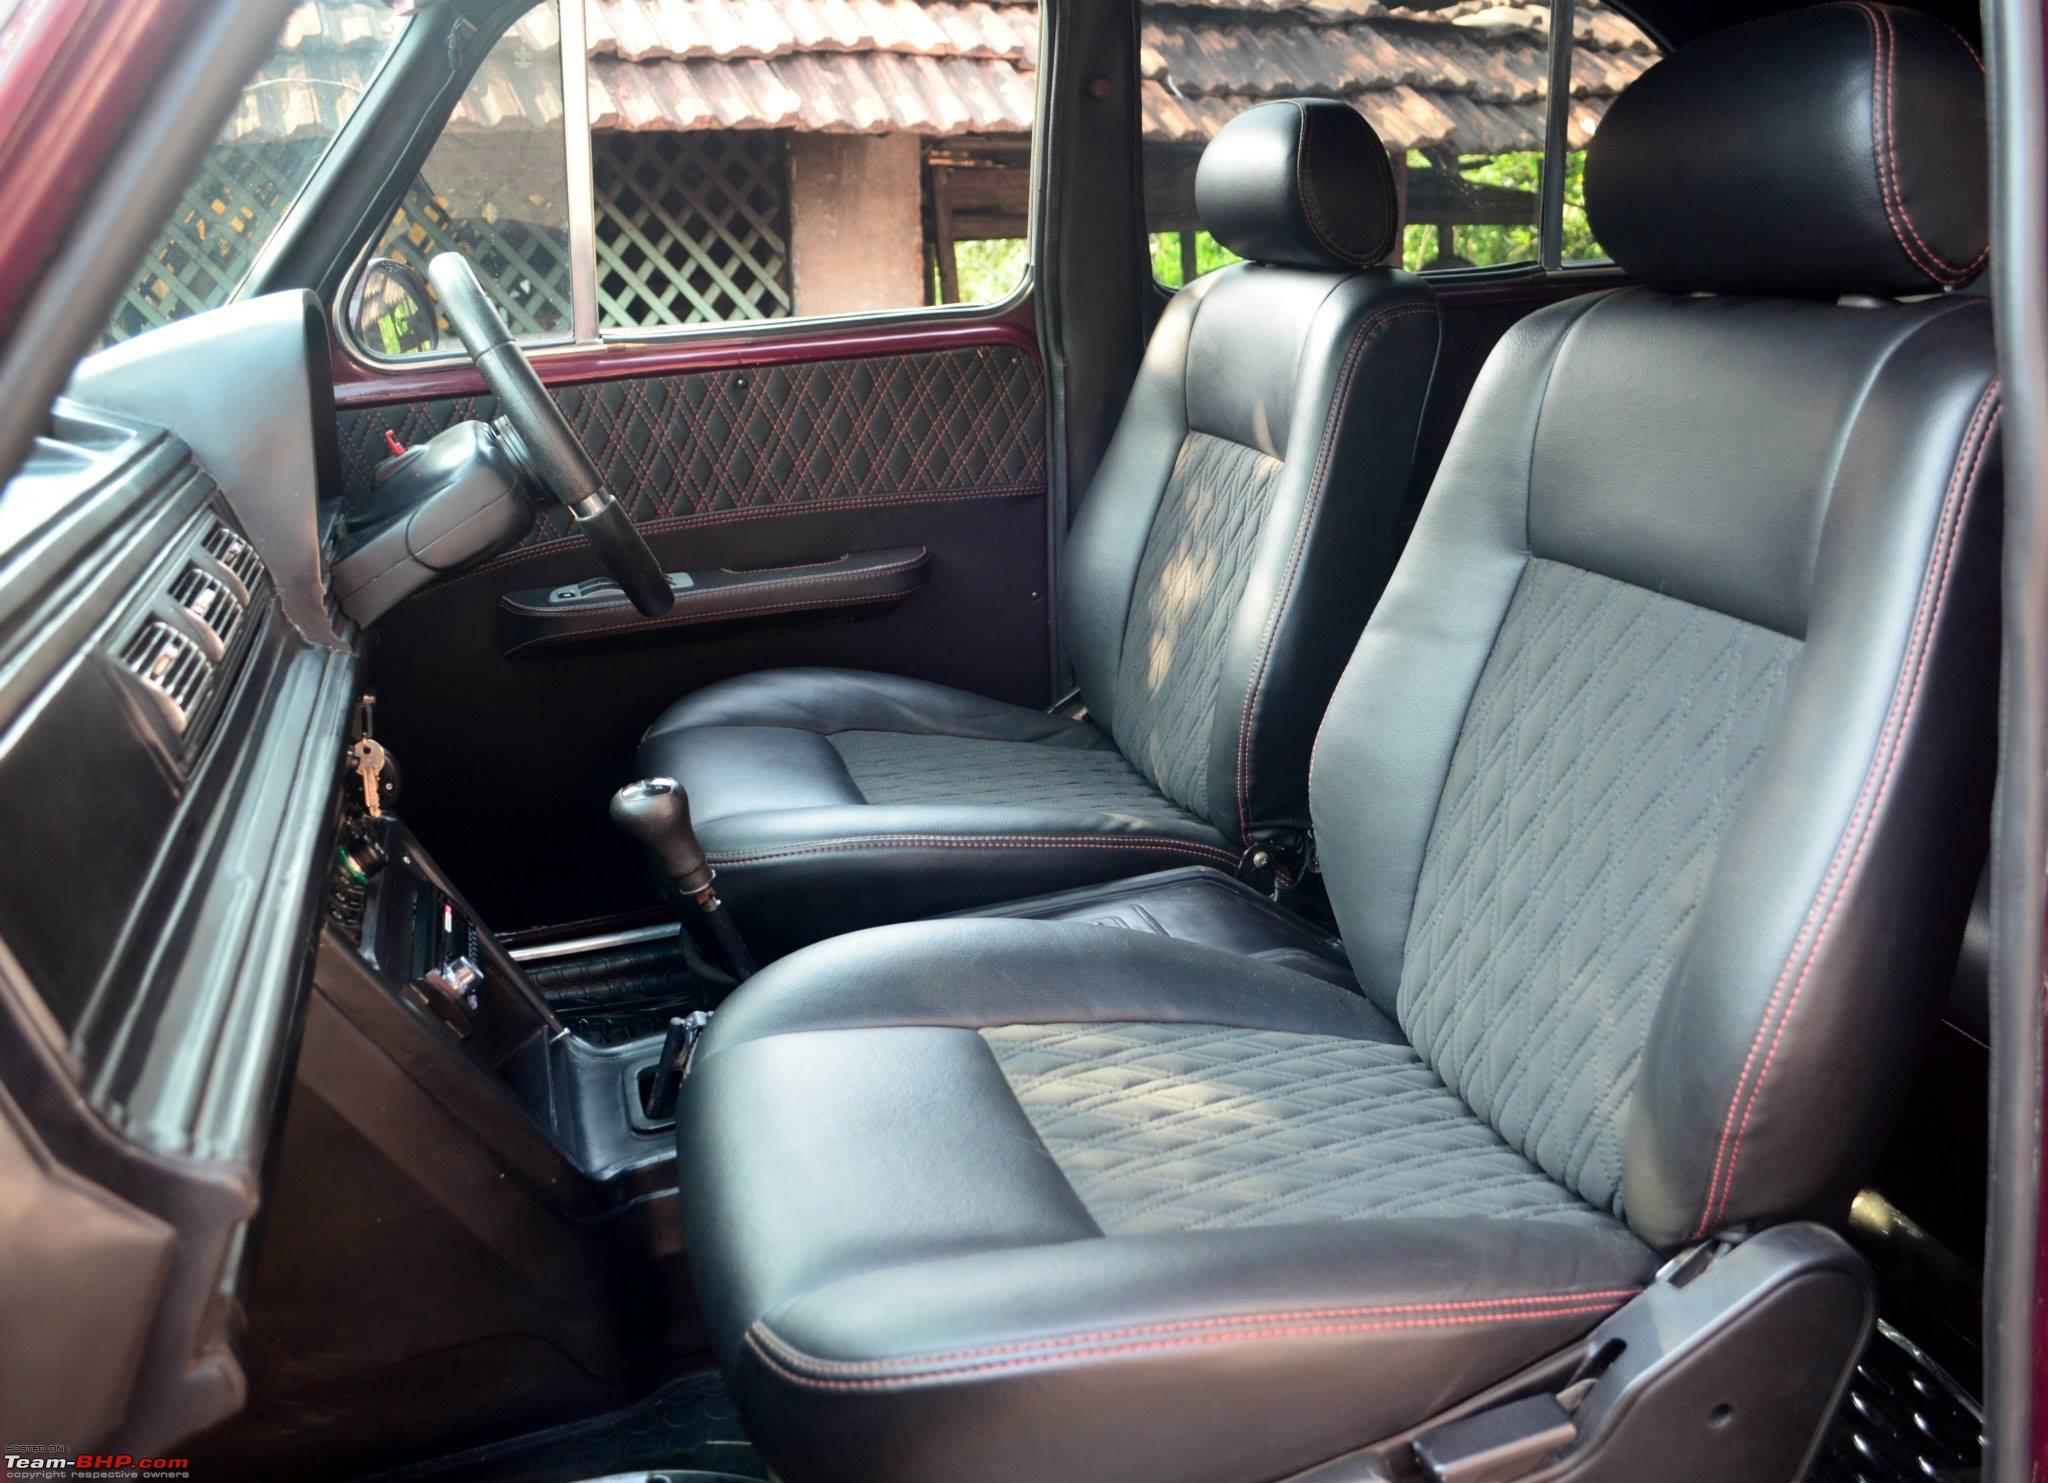 Car interior accessories india - Pics Tastefully Modified Cars In India Isaacjohn 3 Jpg